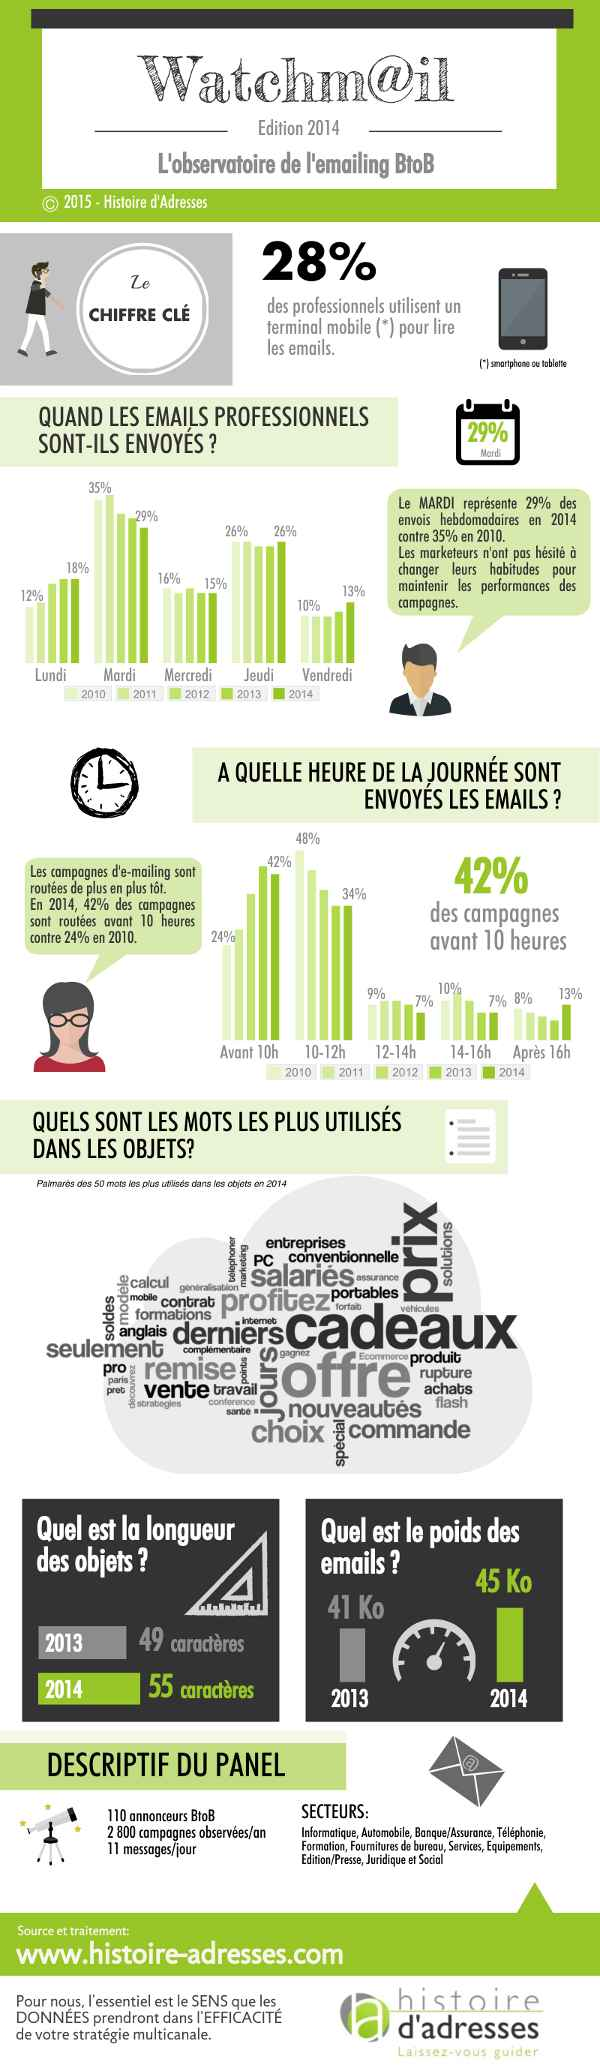 infographie_histoire-adresses_watchmail_2014